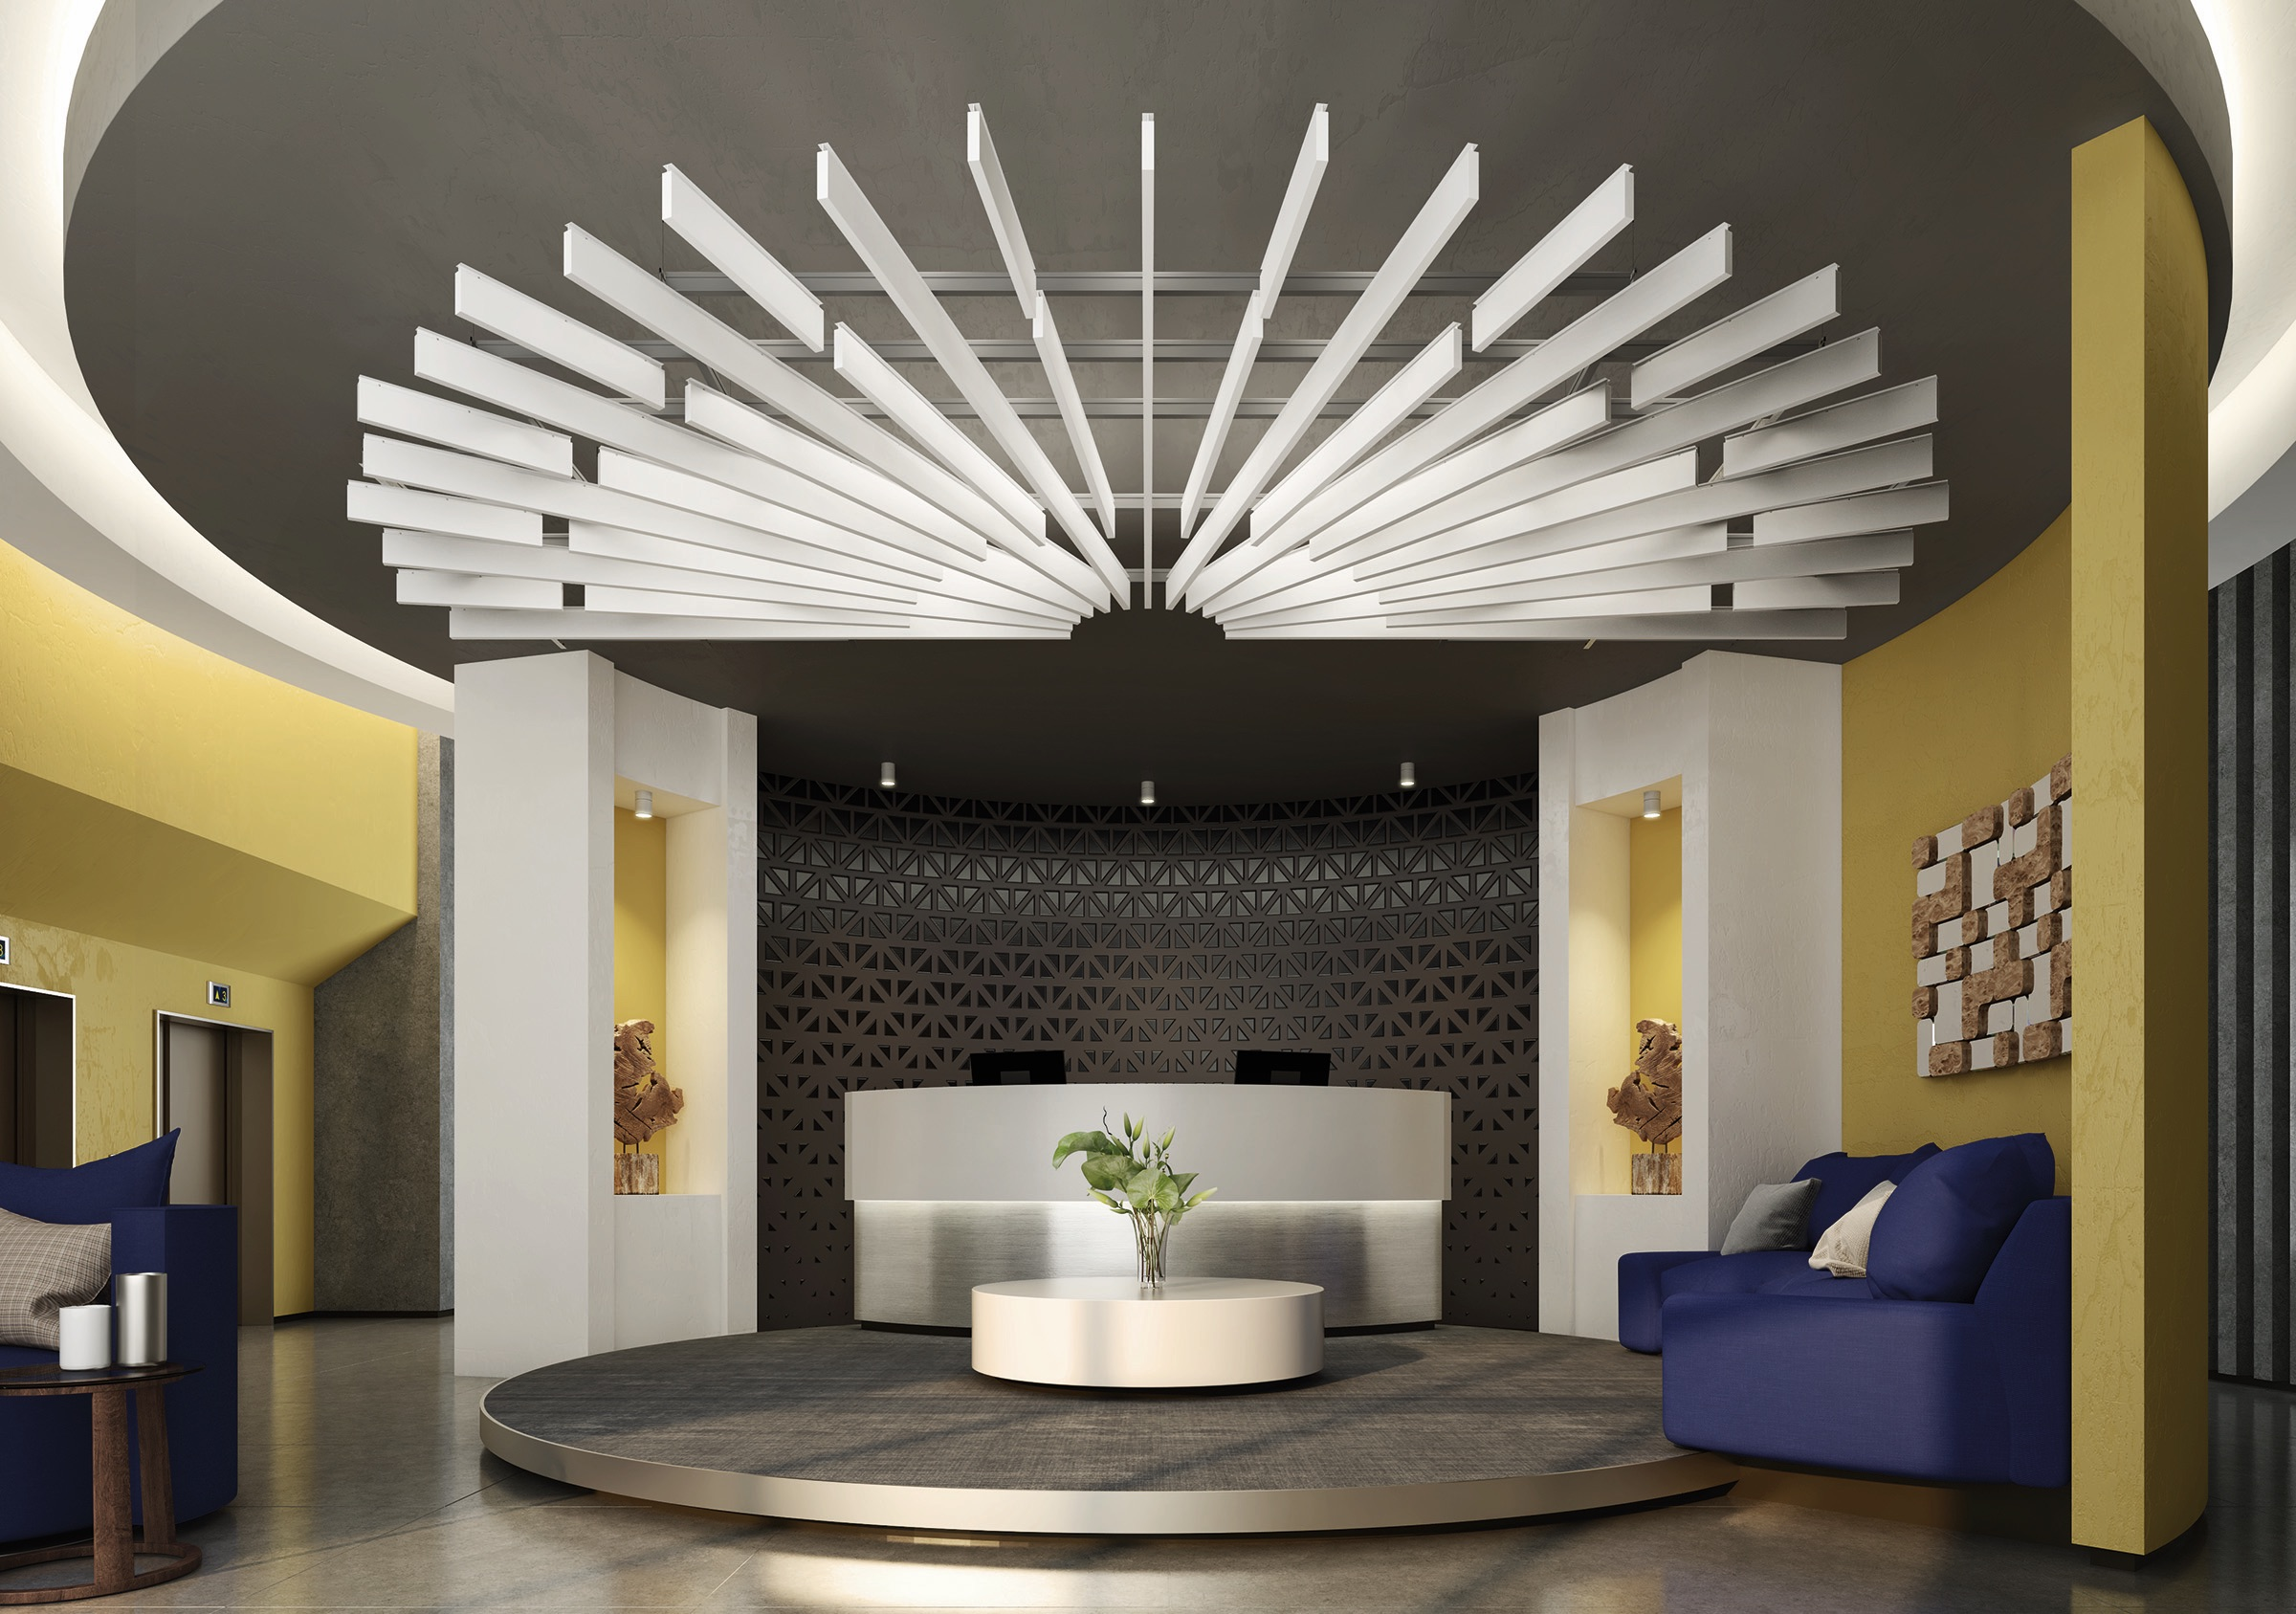 Metalworks blades from Armstrong ceilings